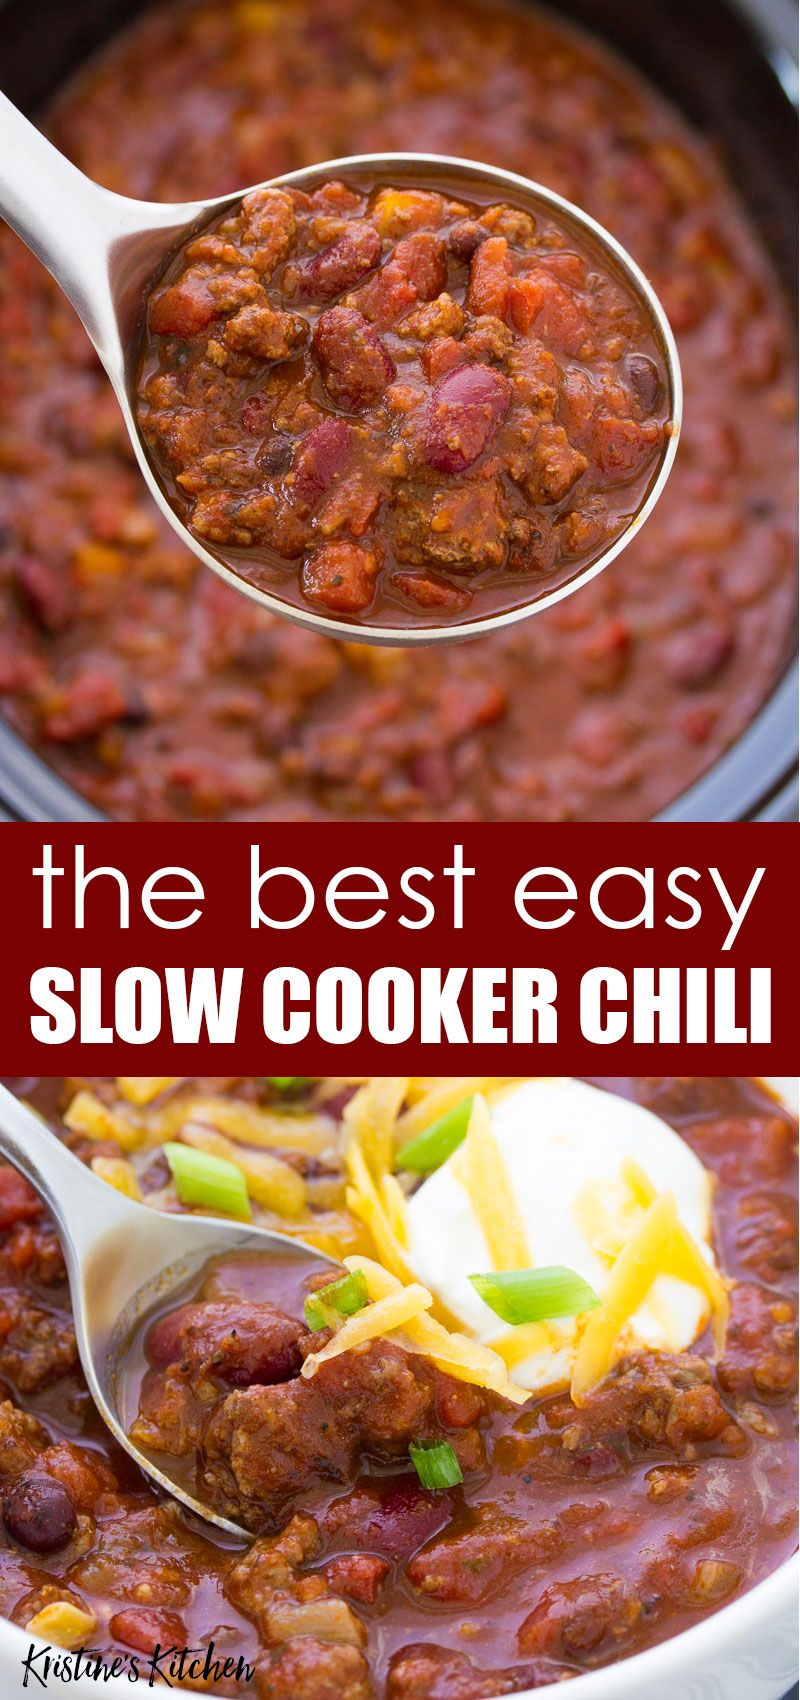 Slow Cooker Chili Slow Cooker Chili Recipe Slow Cooker Chili Crockpot Recipes Slow Cooker